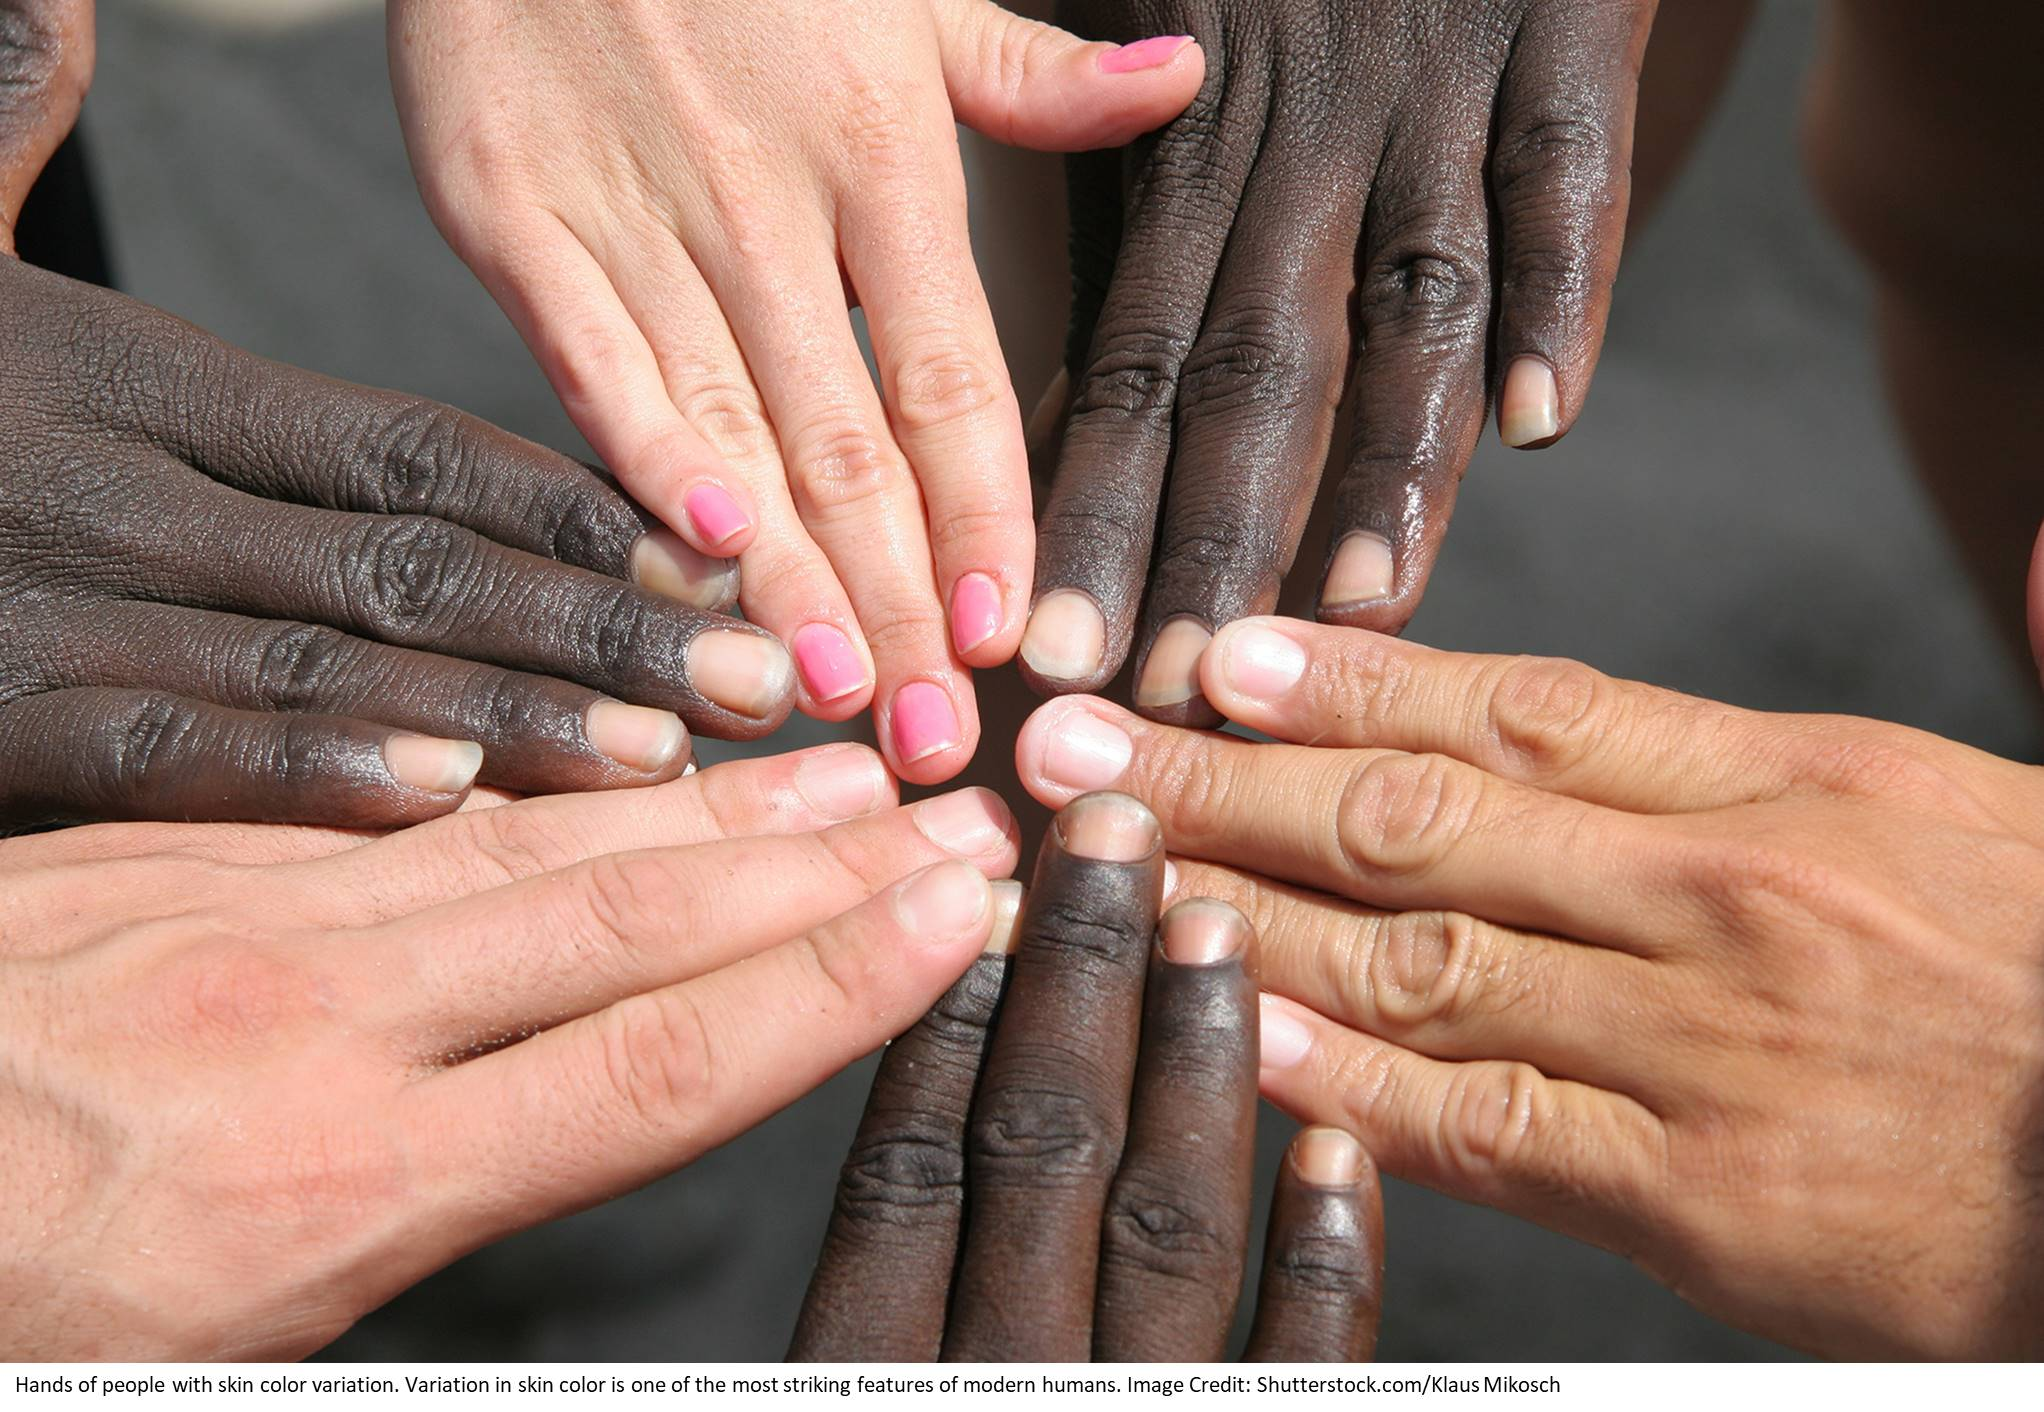 New regions of the human genome linked to skin color variation